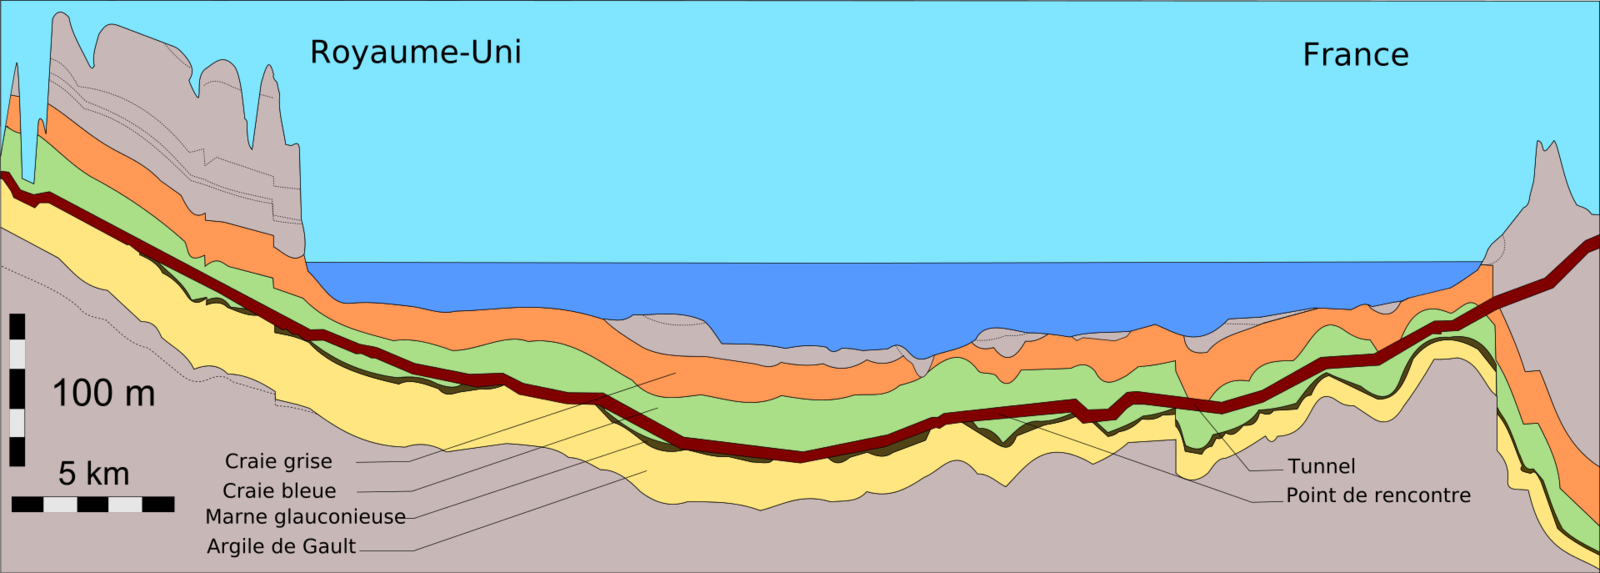 Geological profile of the land in which was dug the Channel Tunnel - according Image Channel Tunnel geological profile / Order Keane.